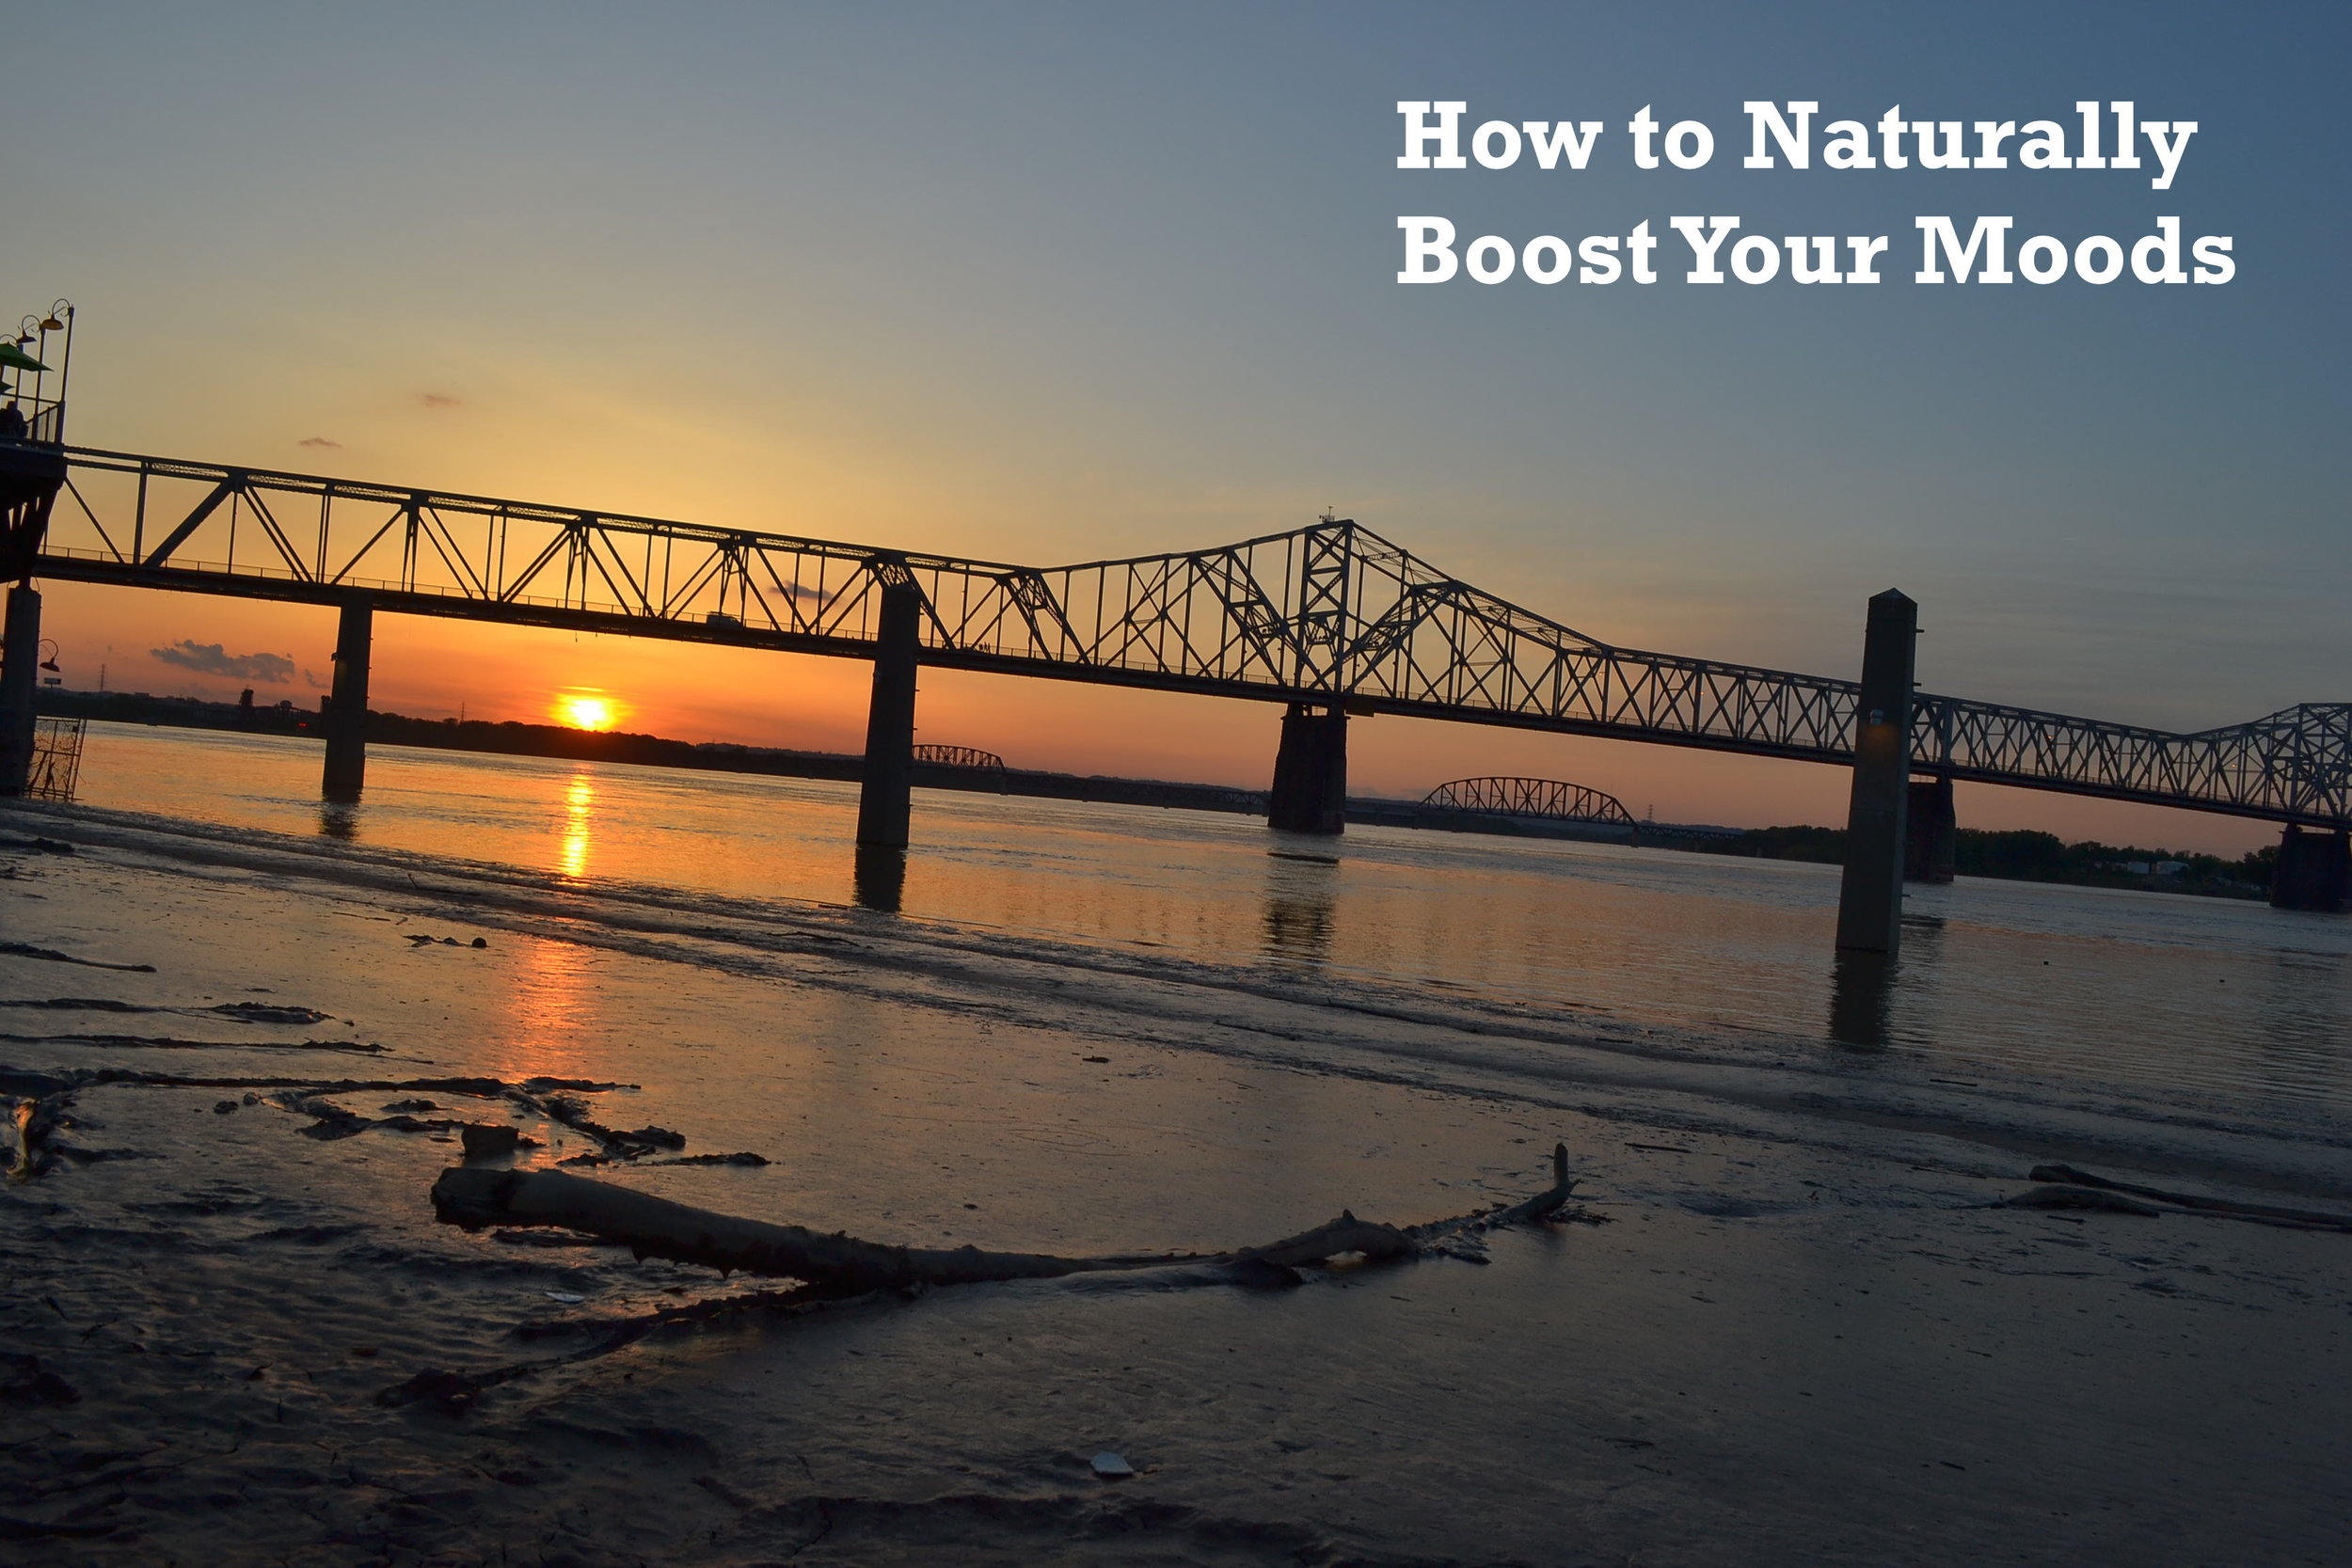 How to naturally boost your moods